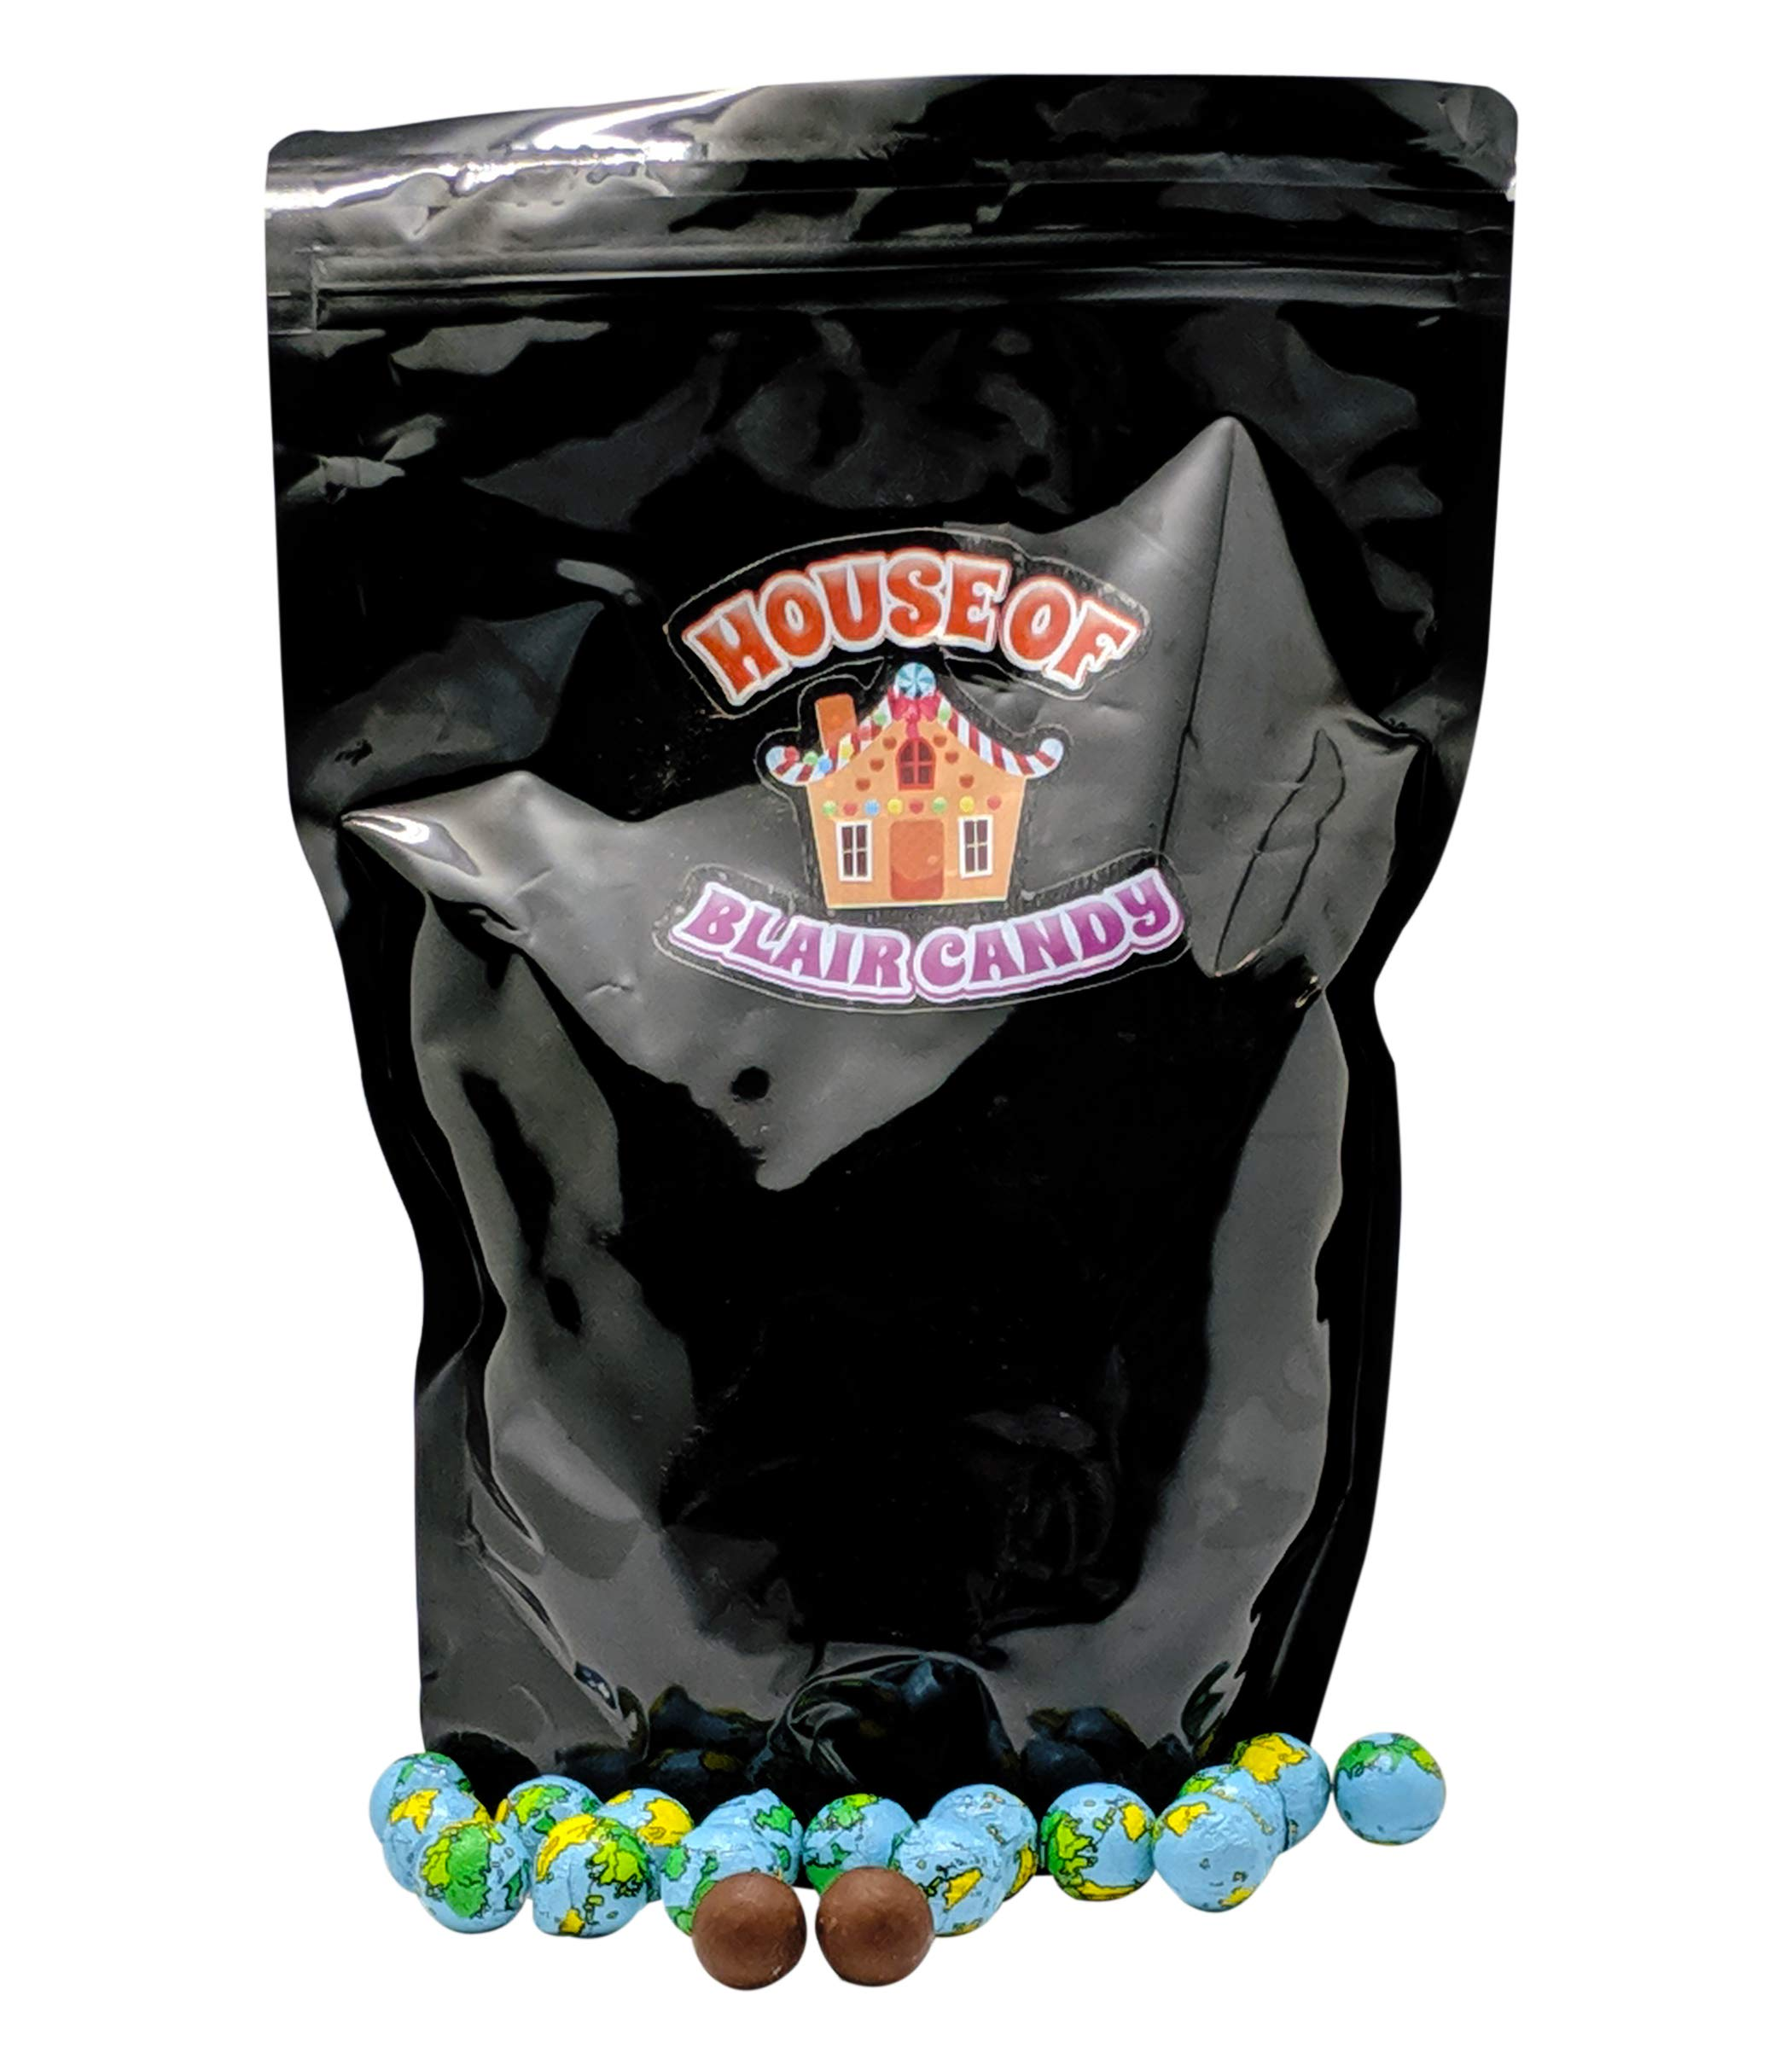 Chocolate Earth Balls - 3 LB (approximately 75-80 Pieces Per Pound) - Individually Wrapped - Sealed in Resealable Candy Bag - Decorative Bulk Filler Chocolate Candies by Blair Candy